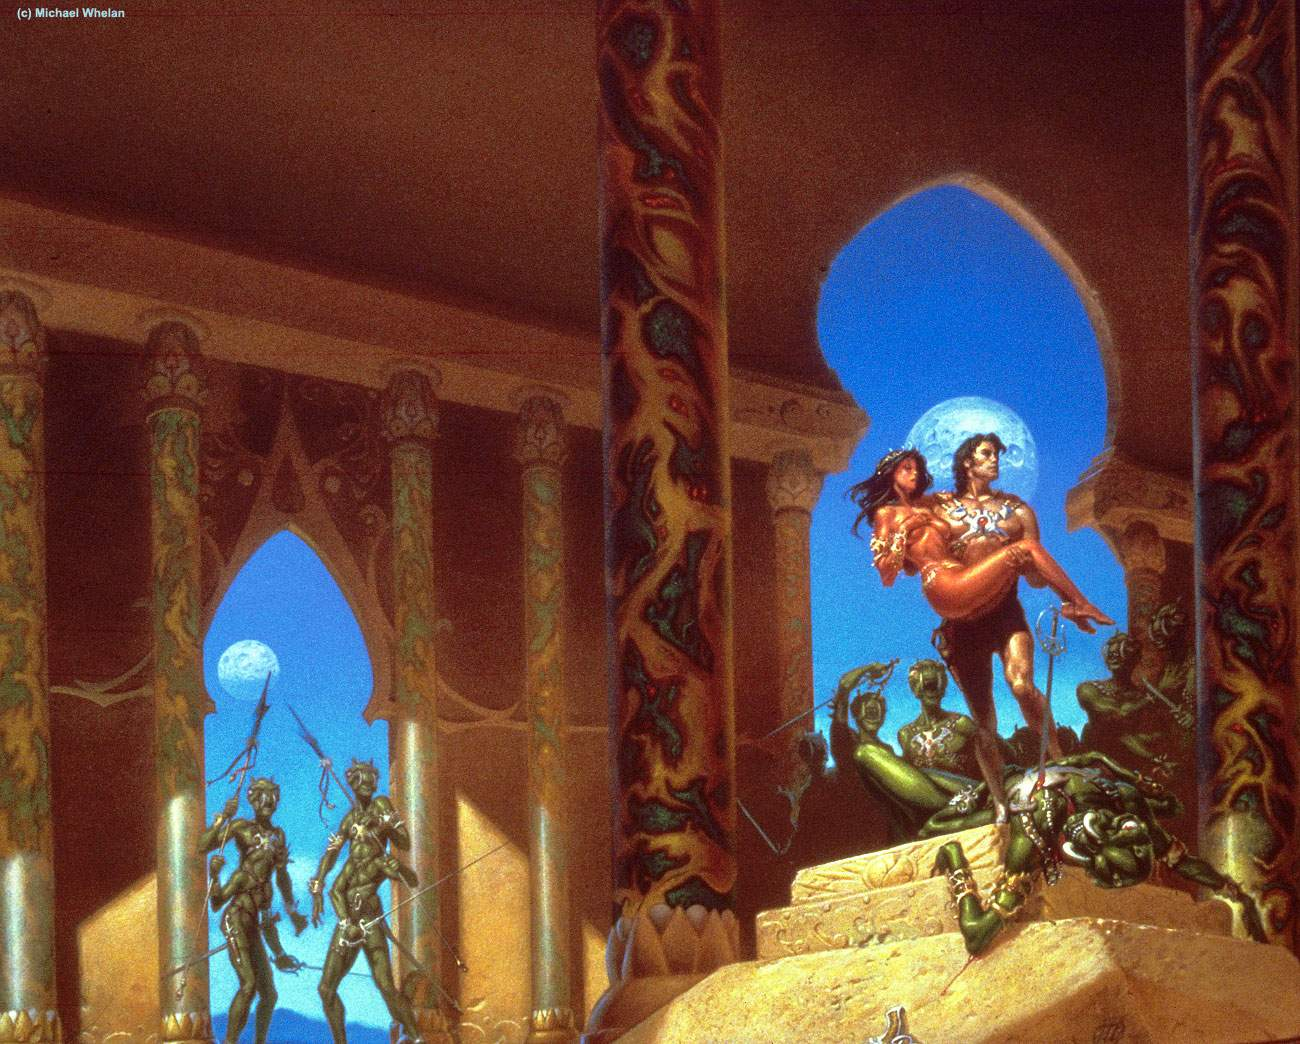 Princess of Mars (C) Michael Whelan